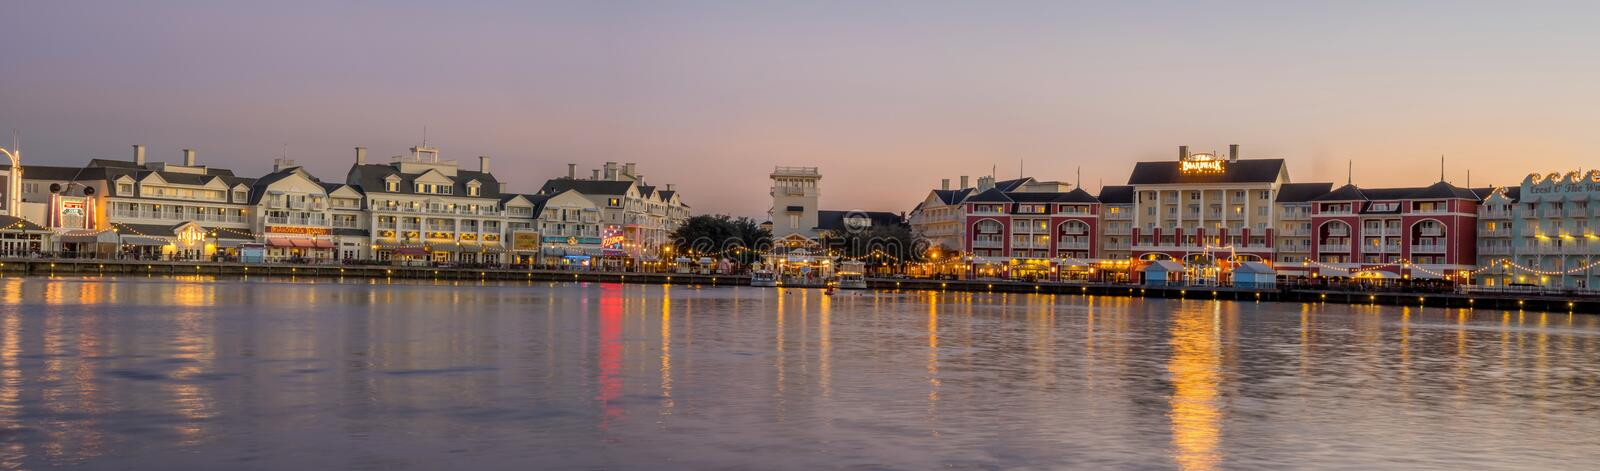 Disneys Boardwalk. At Bay Lake near Epcot Resorts Boulevard in Orlando, USA. Disney World is visited by 52.5 million people annually royalty free stock images